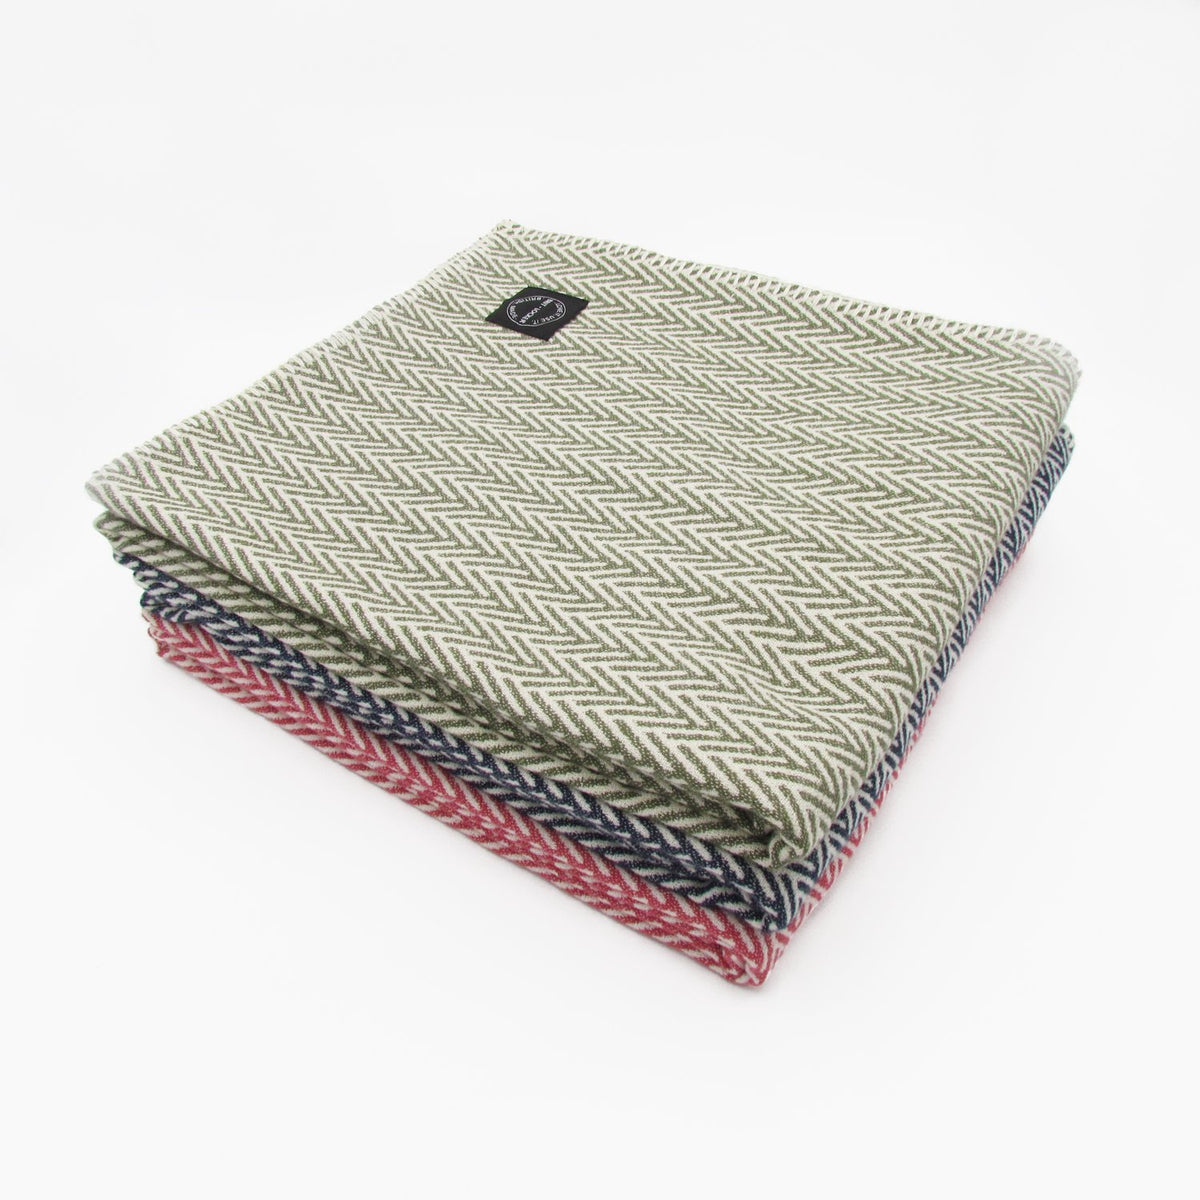 Organic Cotton Throw / Blanket - Watermelon